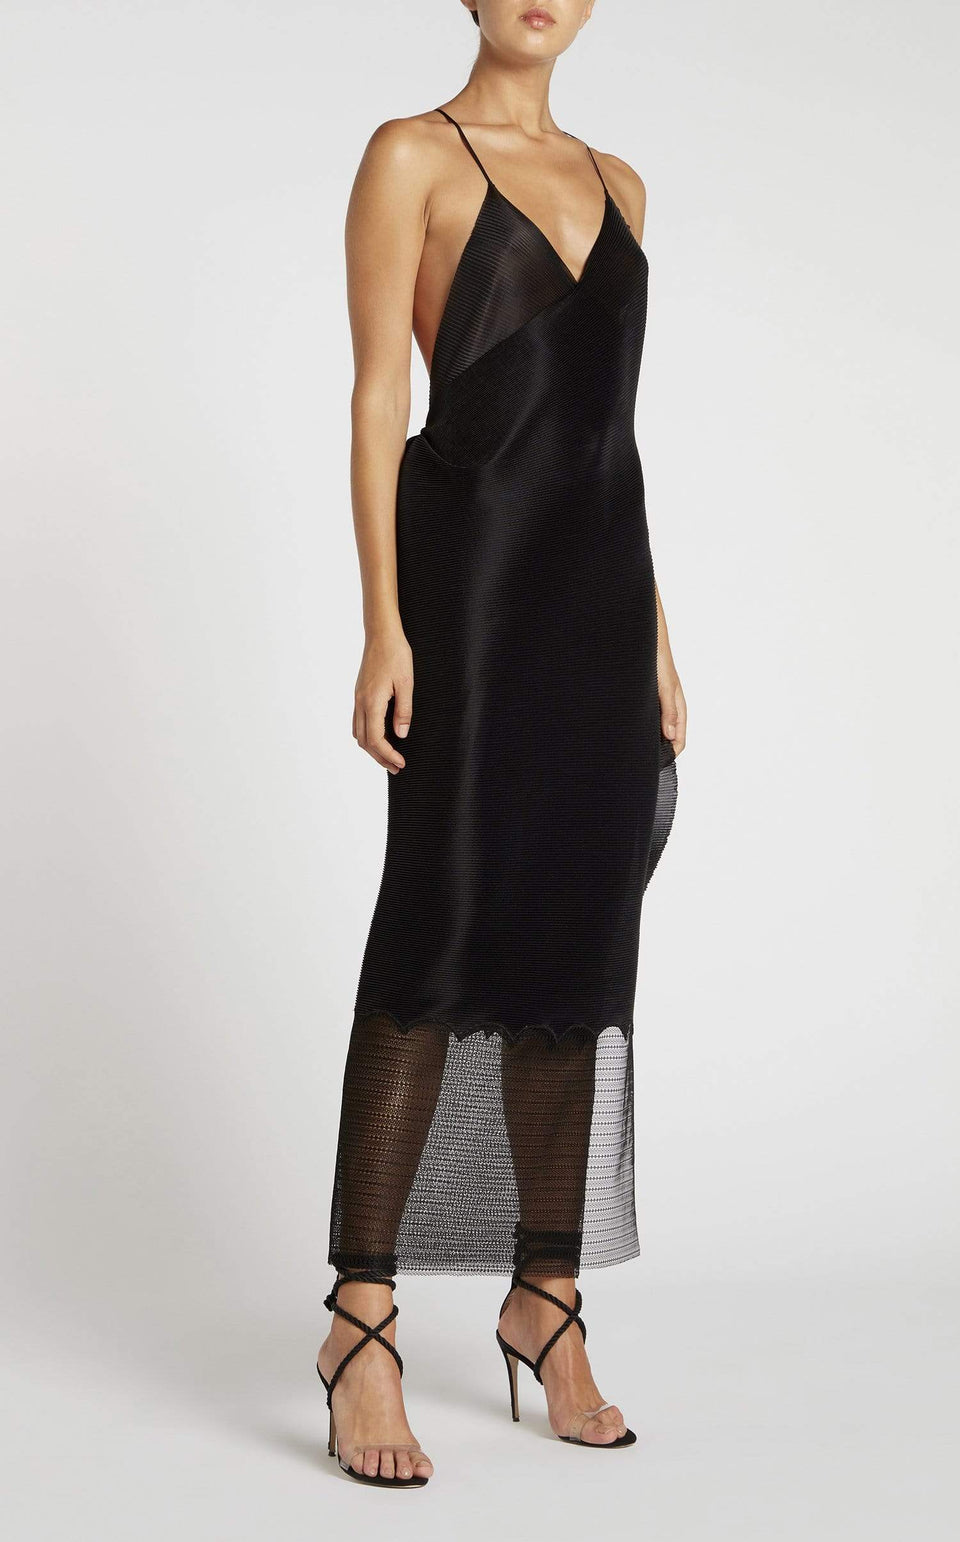 Captiva Dress In Black from Roland Mouret